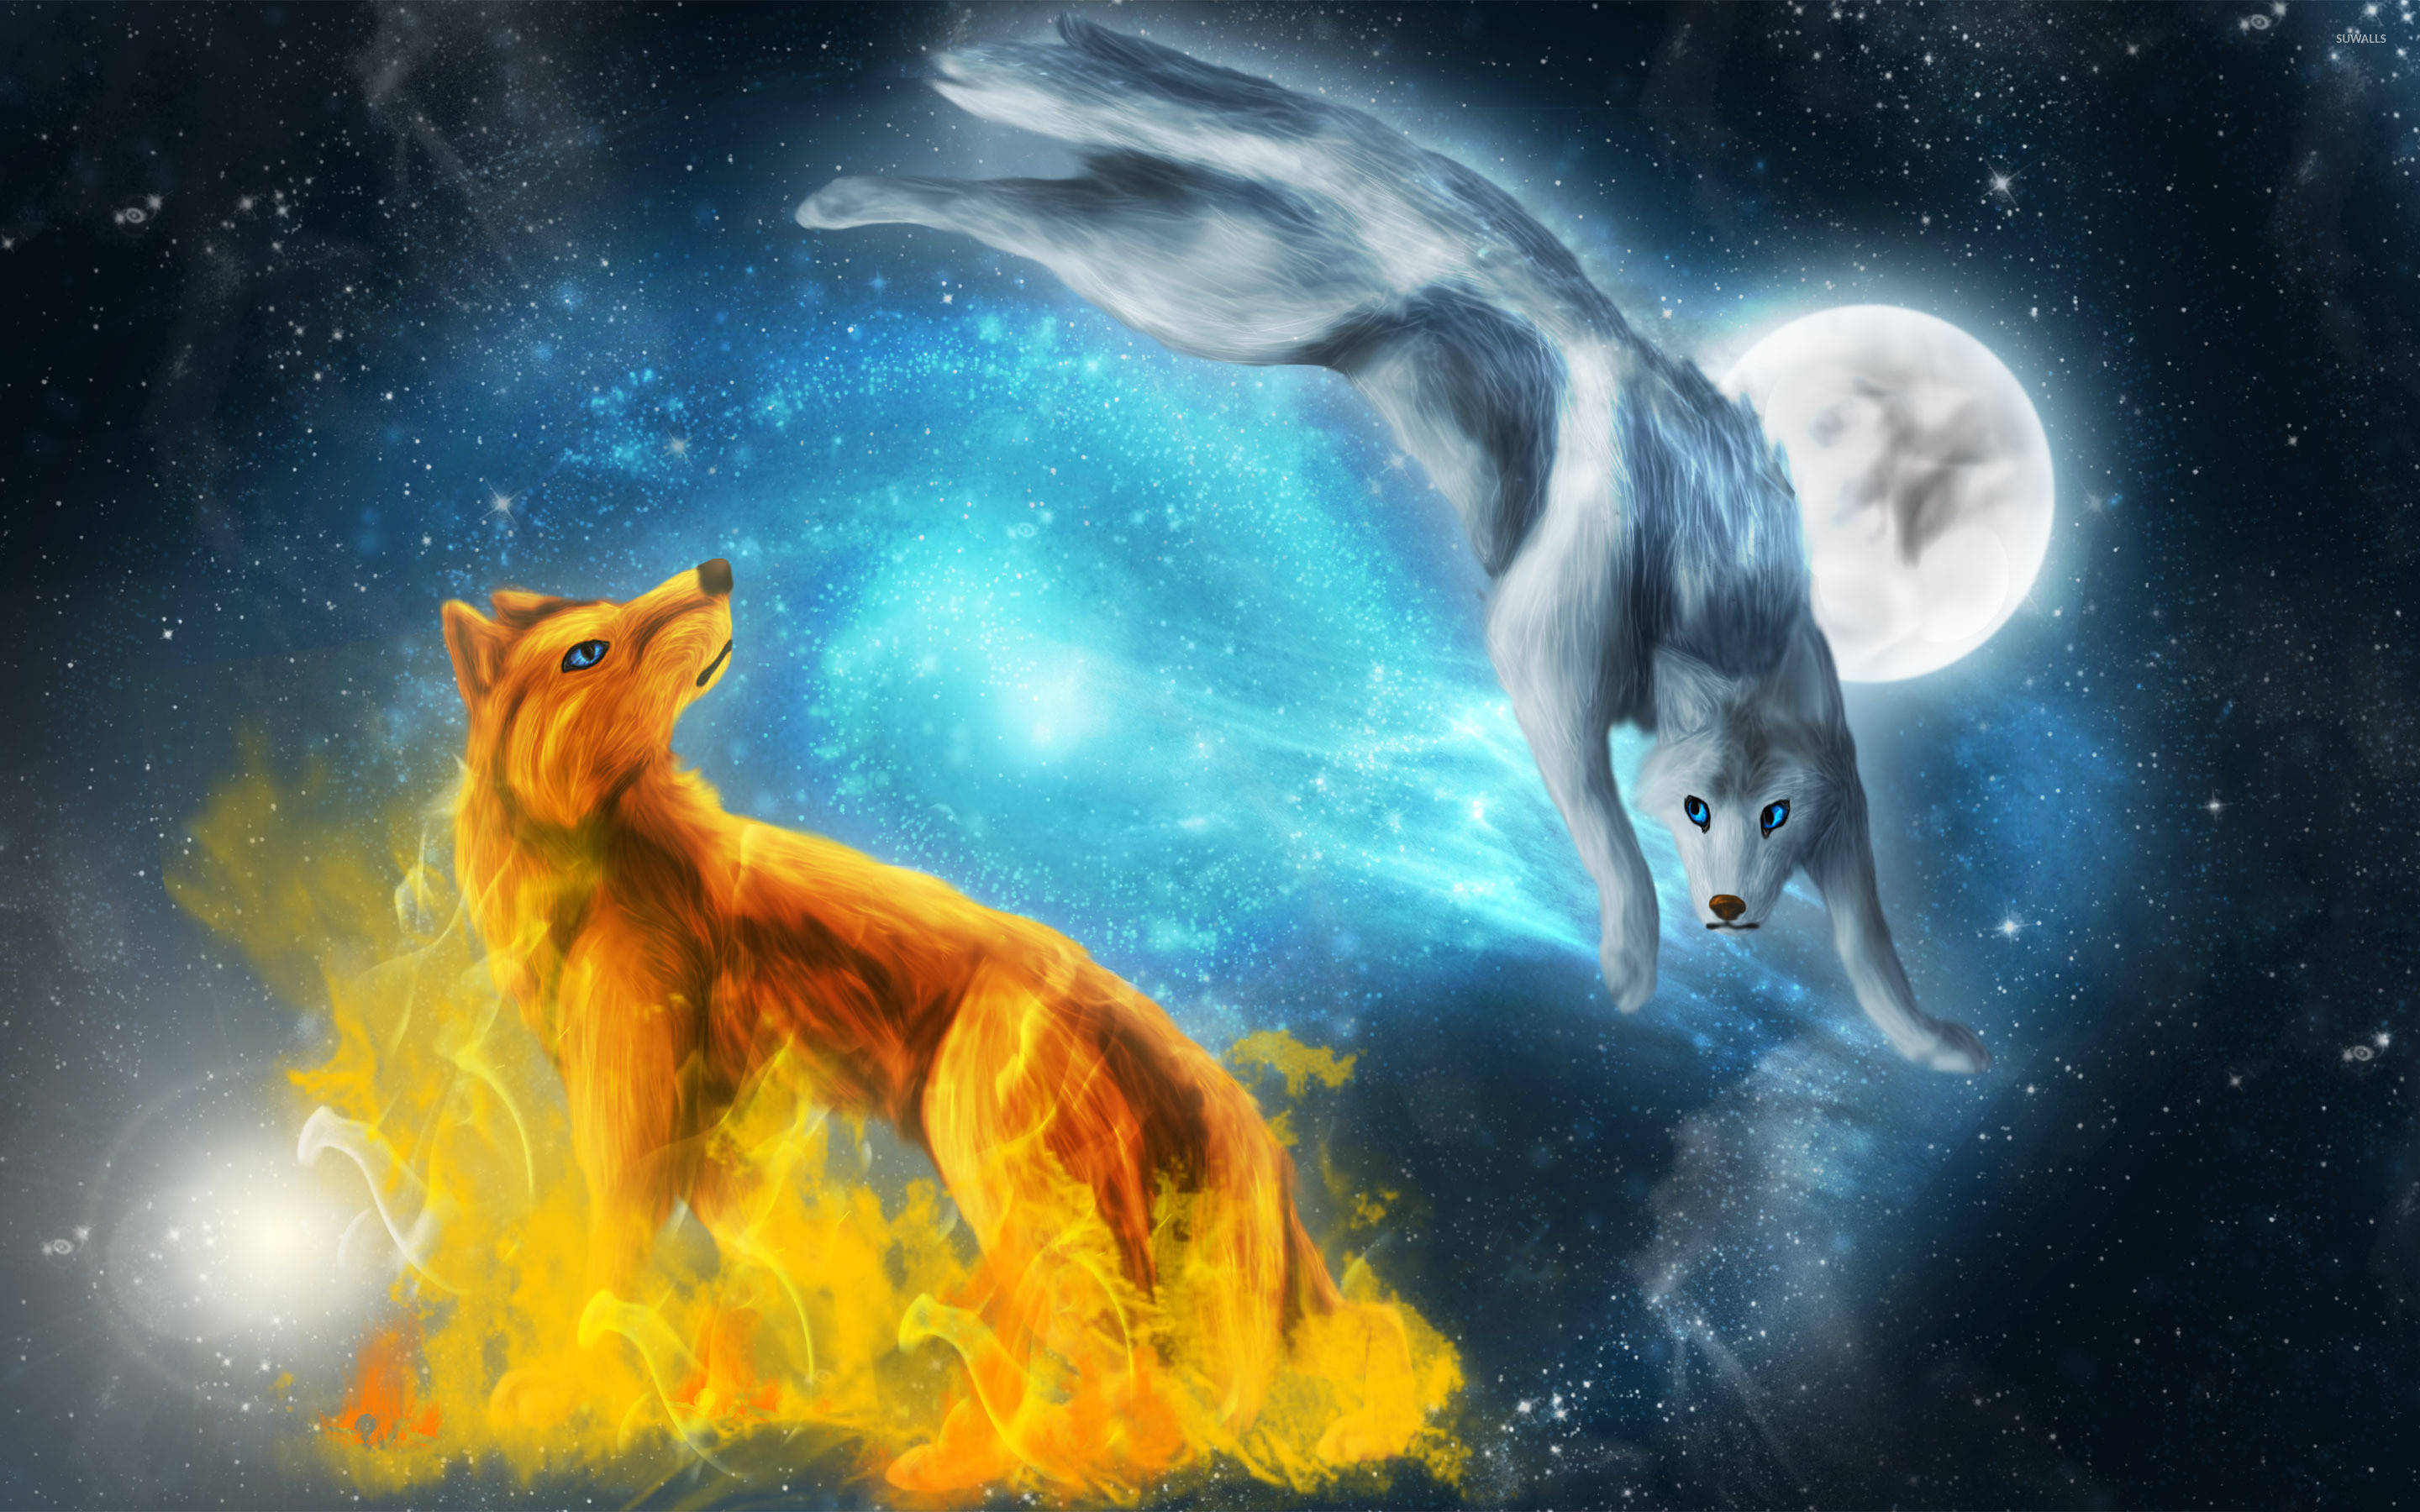 Fire and ice wolves wallpaper jpg